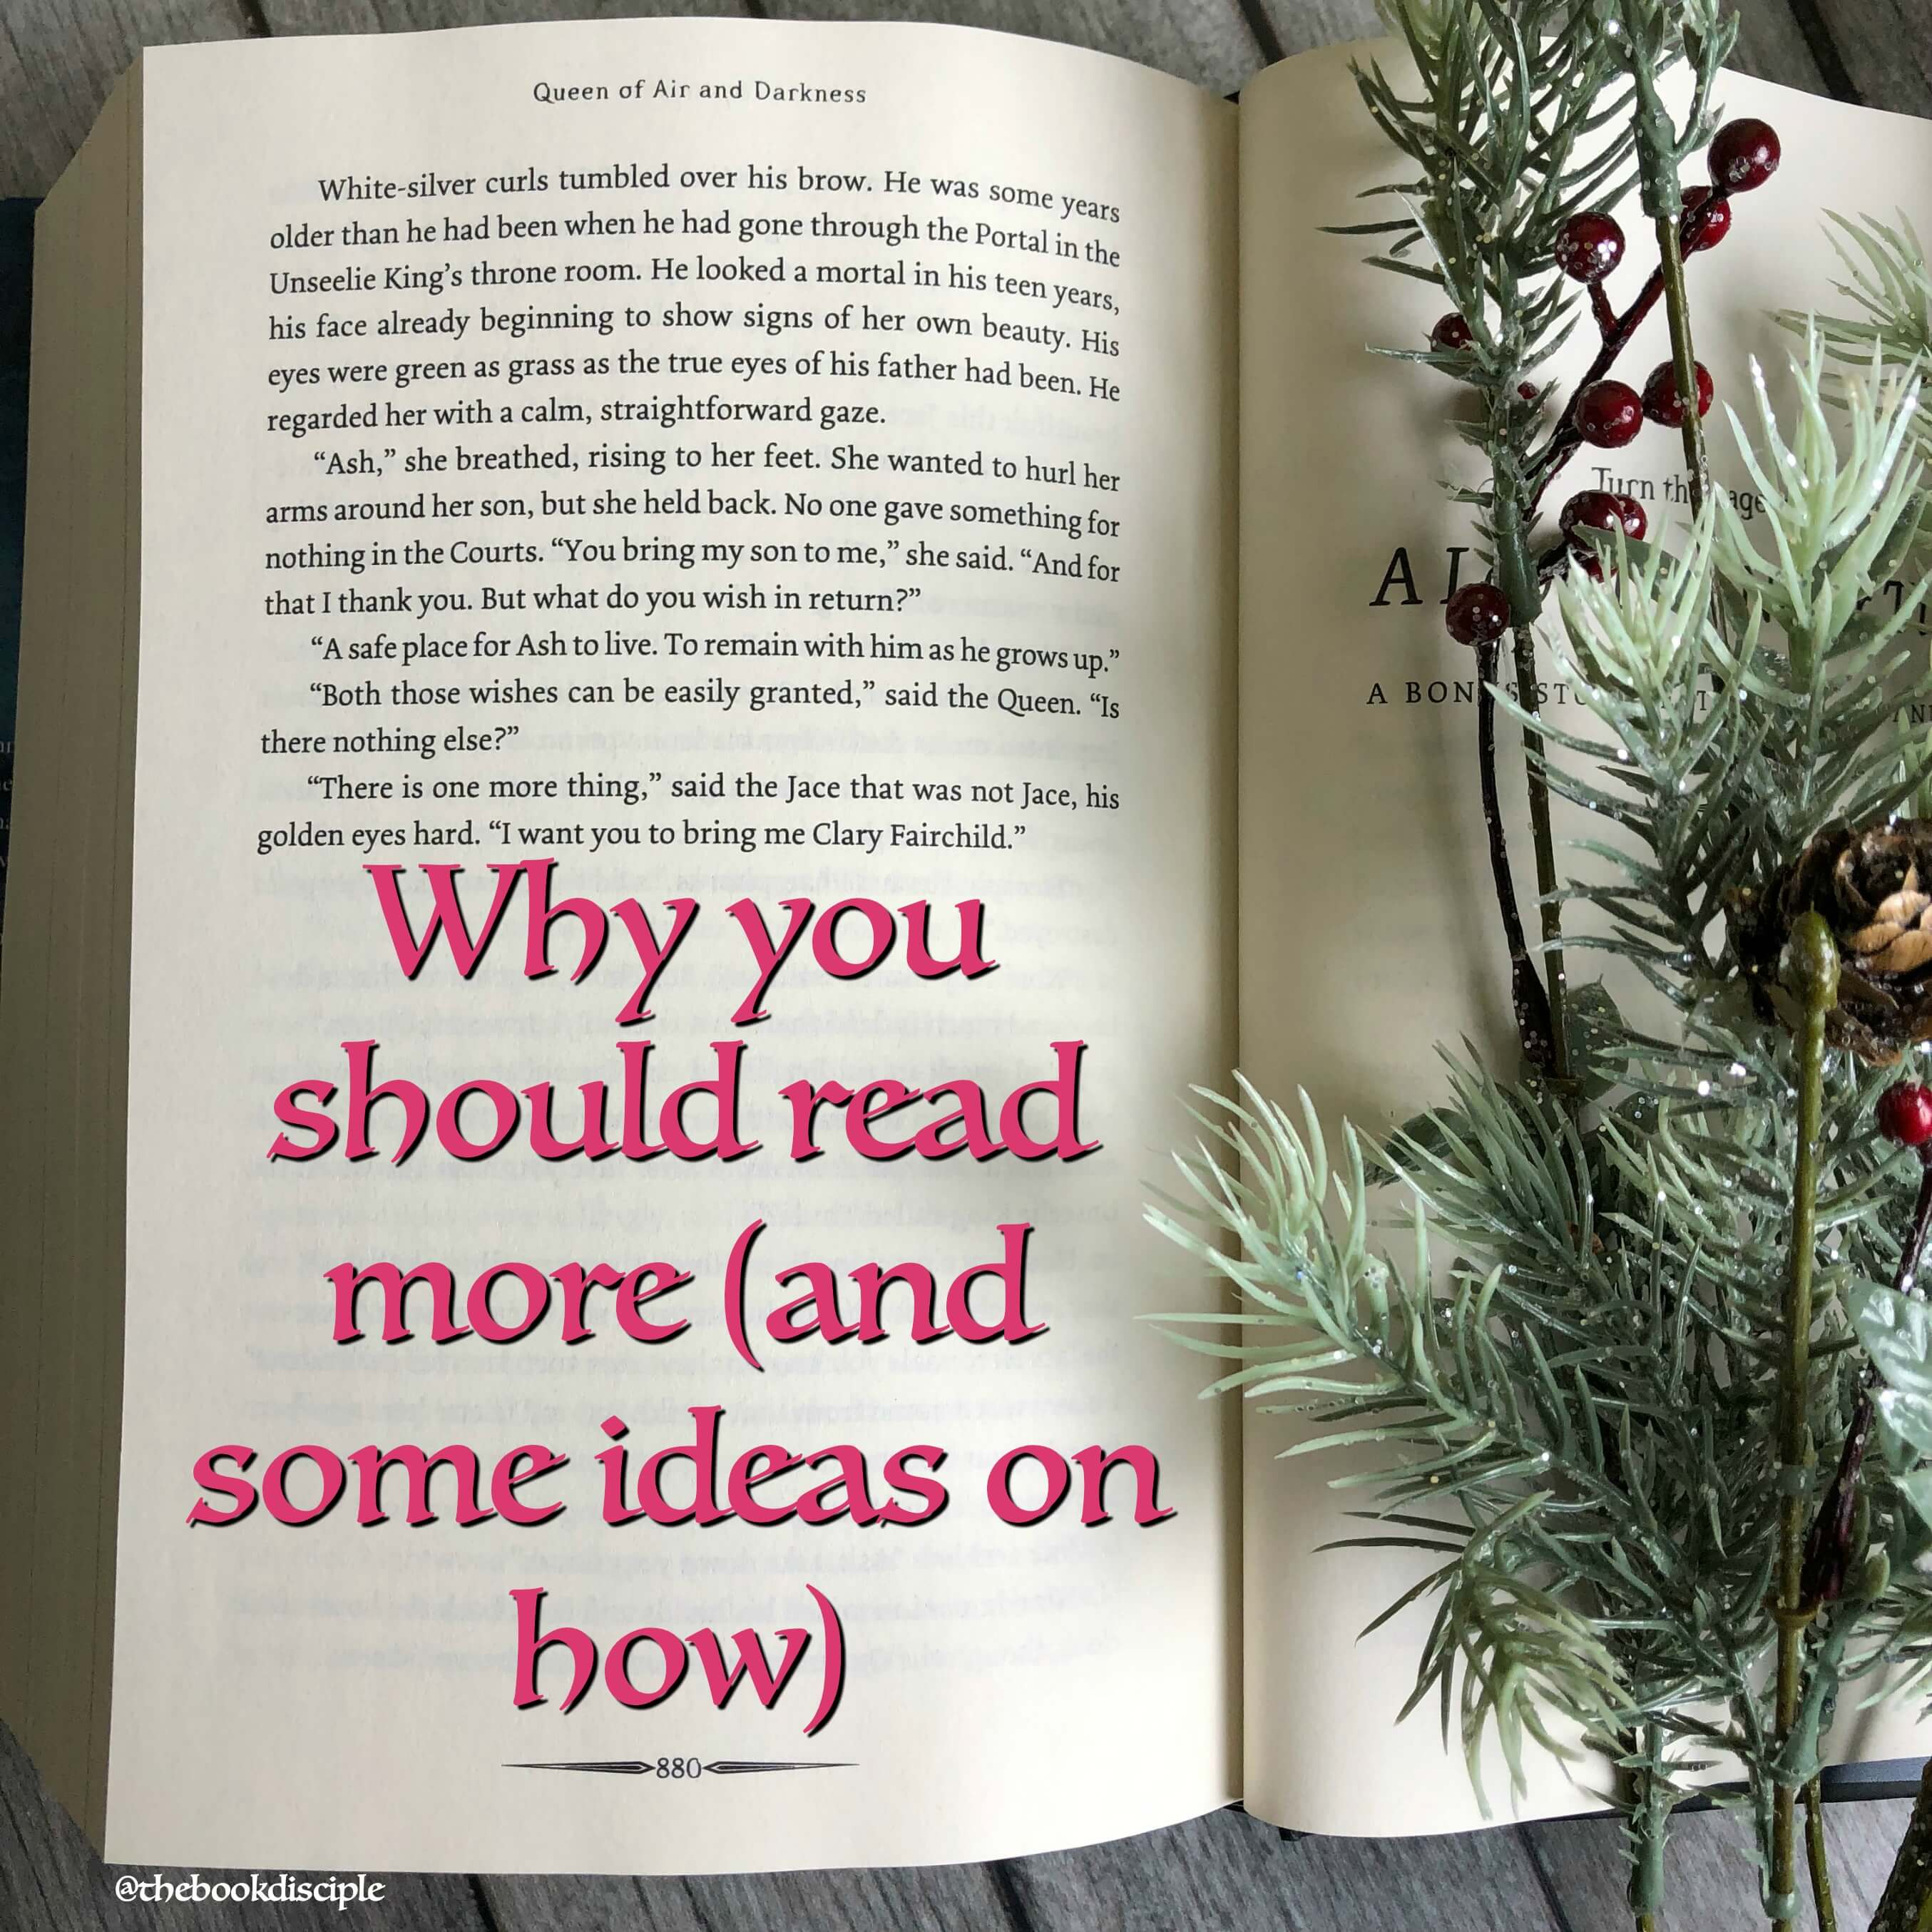 5 reasons you should read more (and some ideas on how)